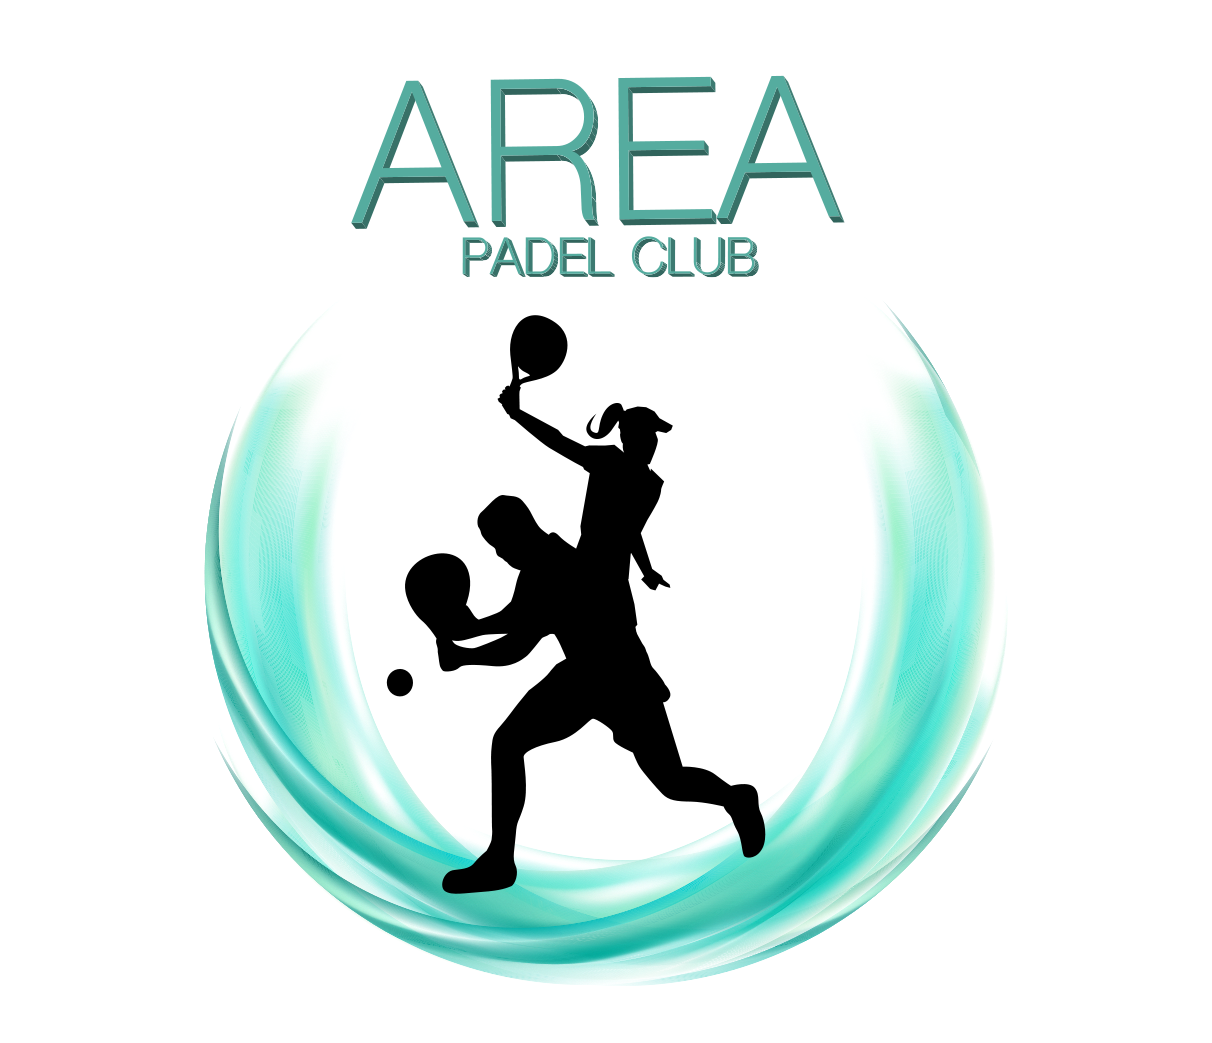 Area Padel Club